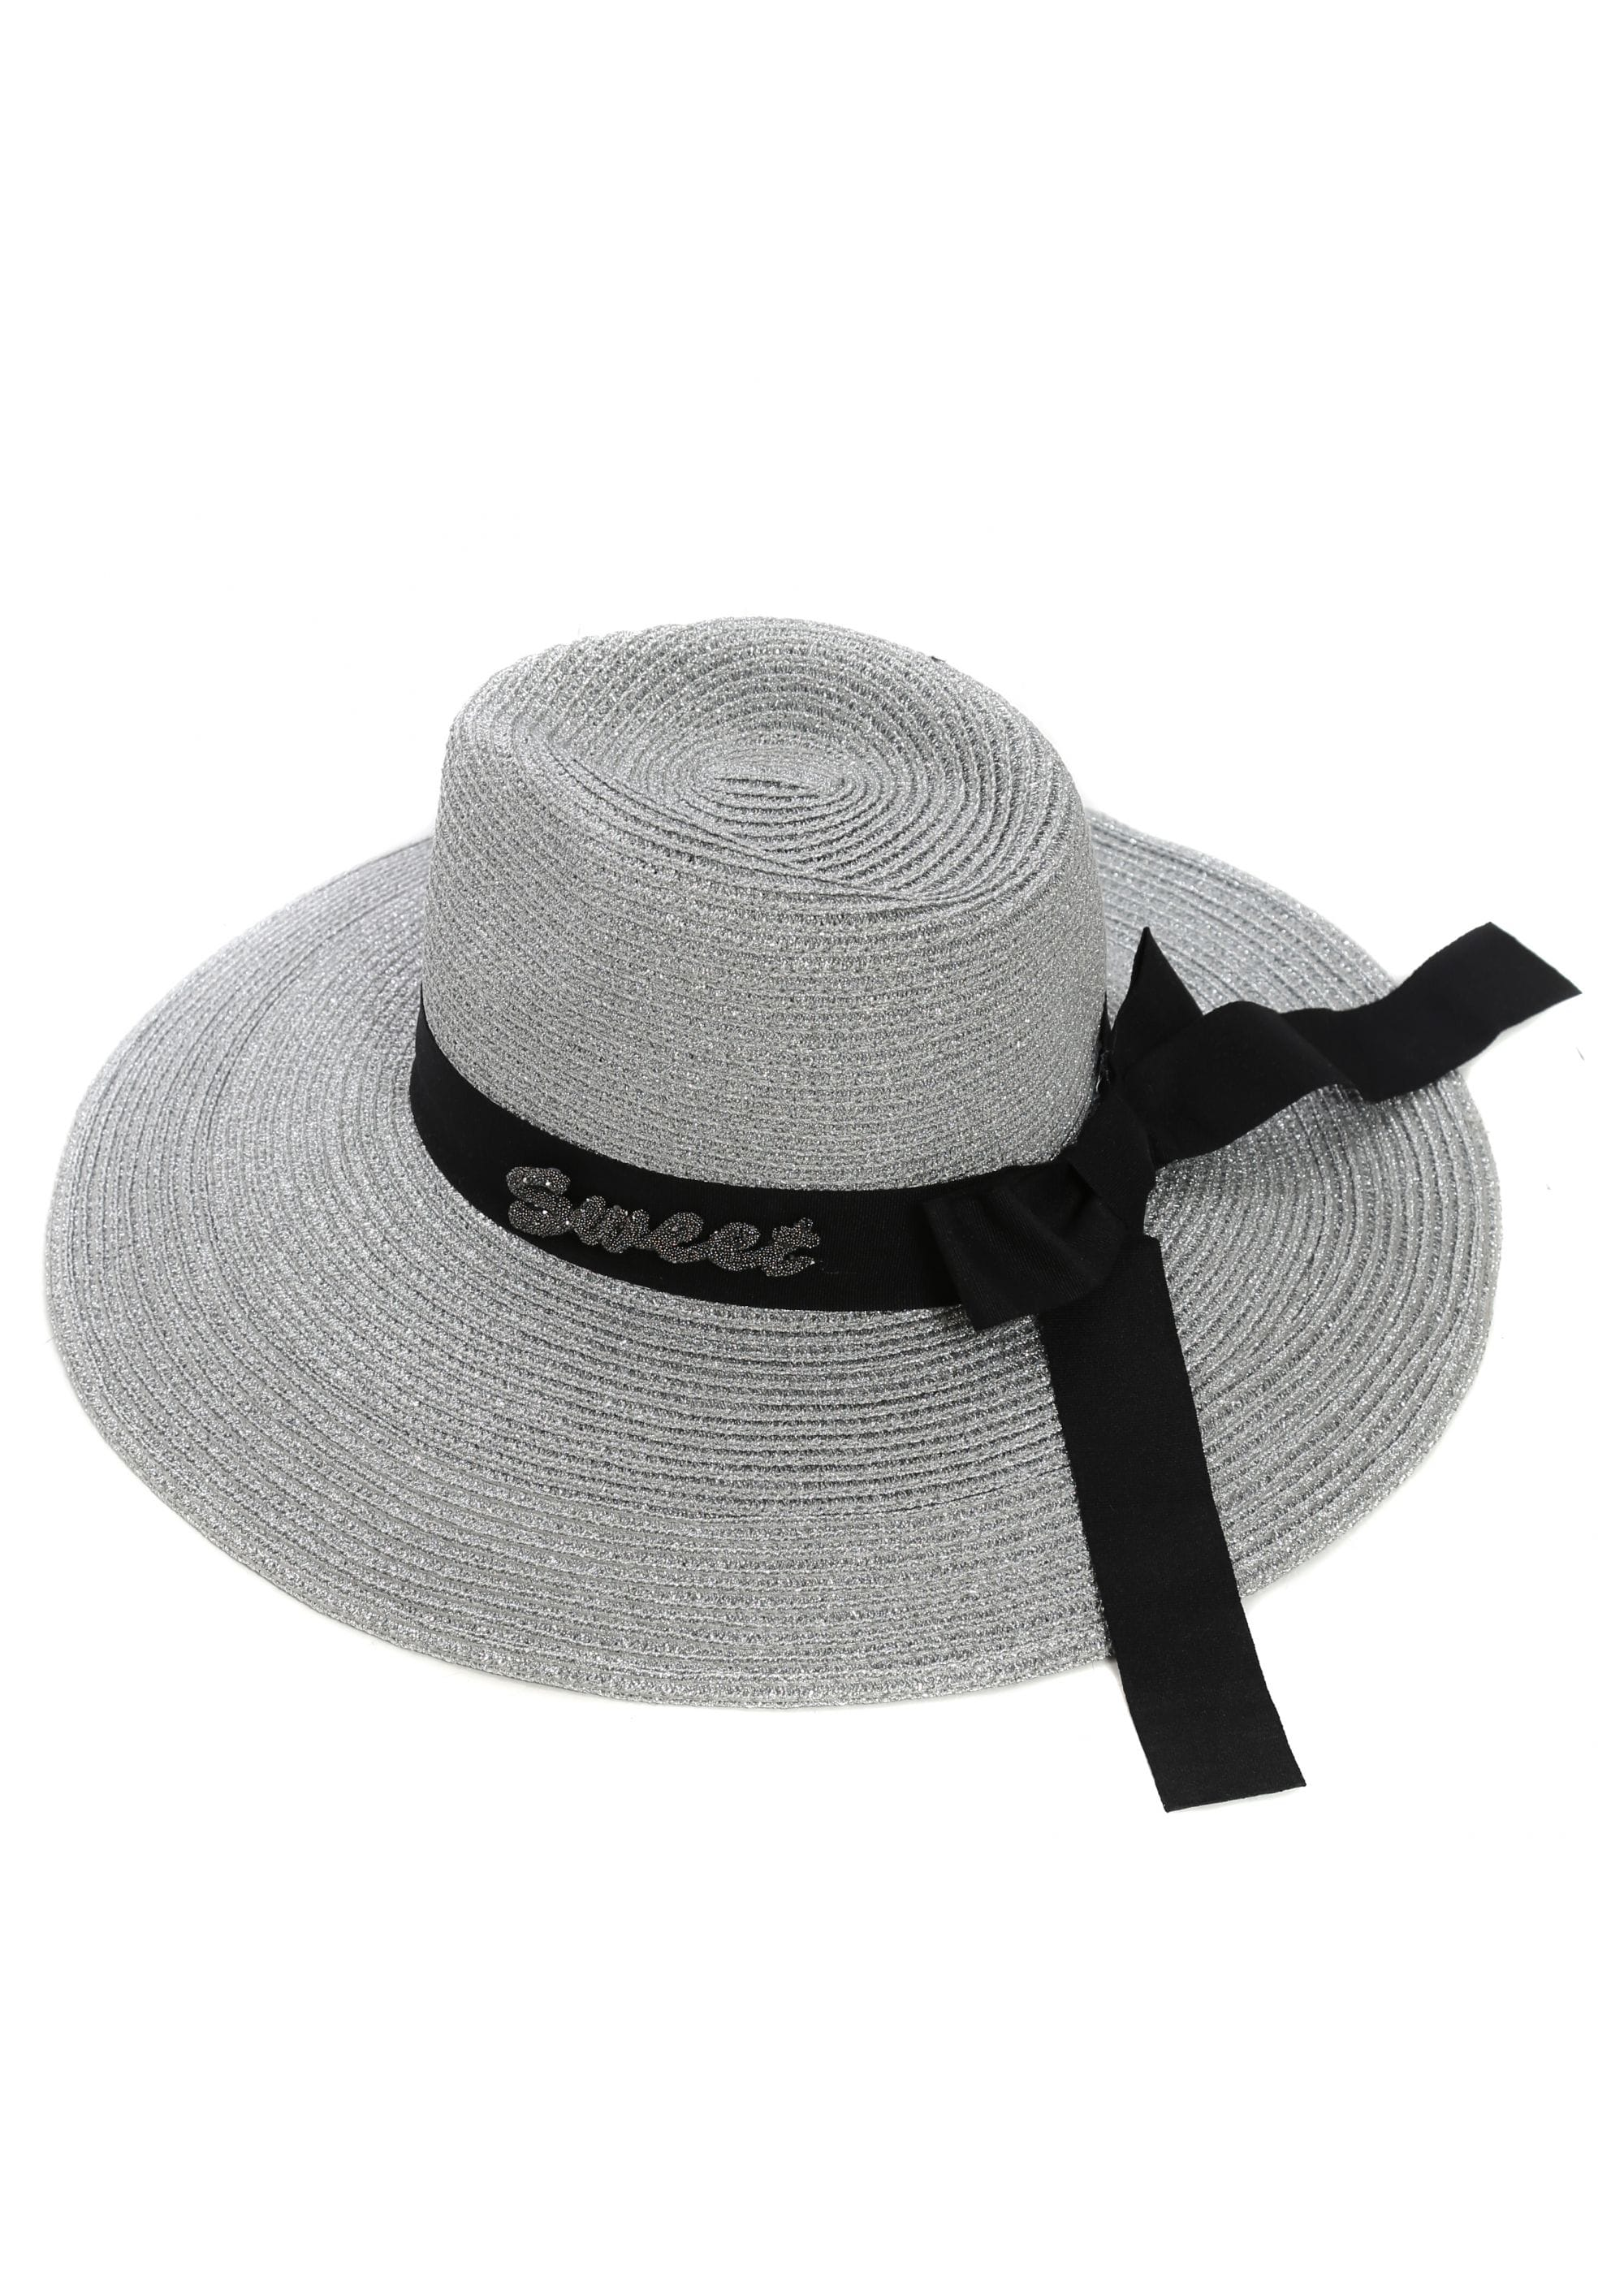 0d0d589b7 French Boutique Silver Straw Black Ribbon Sweet Logo Beach Hat